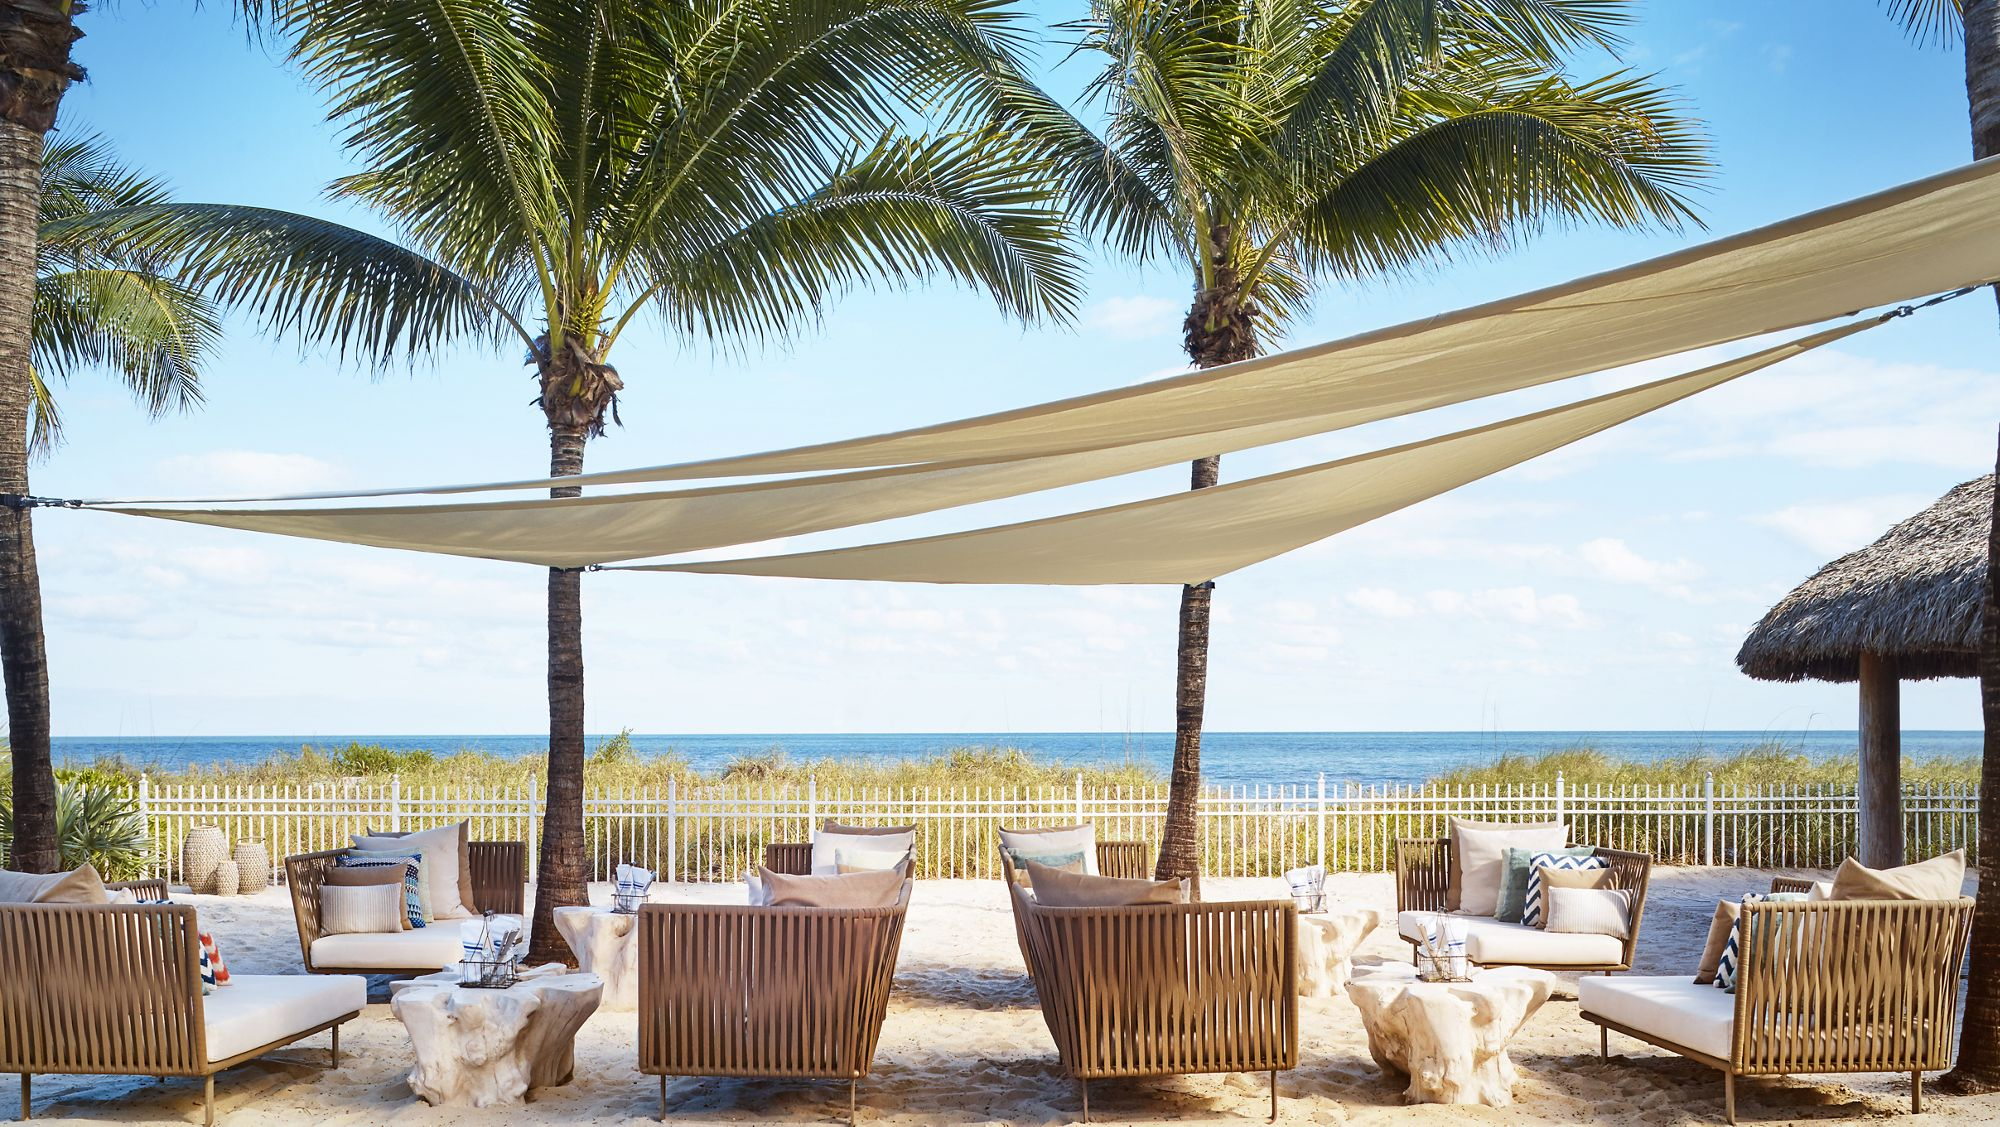 Dune Burgers On The Beach The Ritz Carlton Key Biscayne Miami